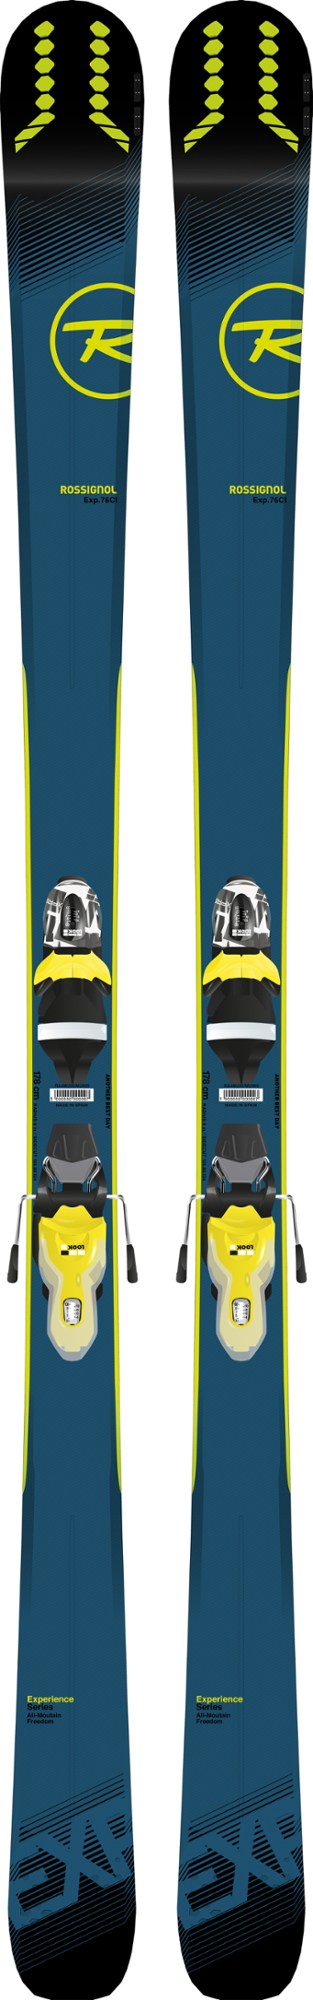 Rossignol Experience 76 Ci Skis with Bindings - Men's - 2018/2019